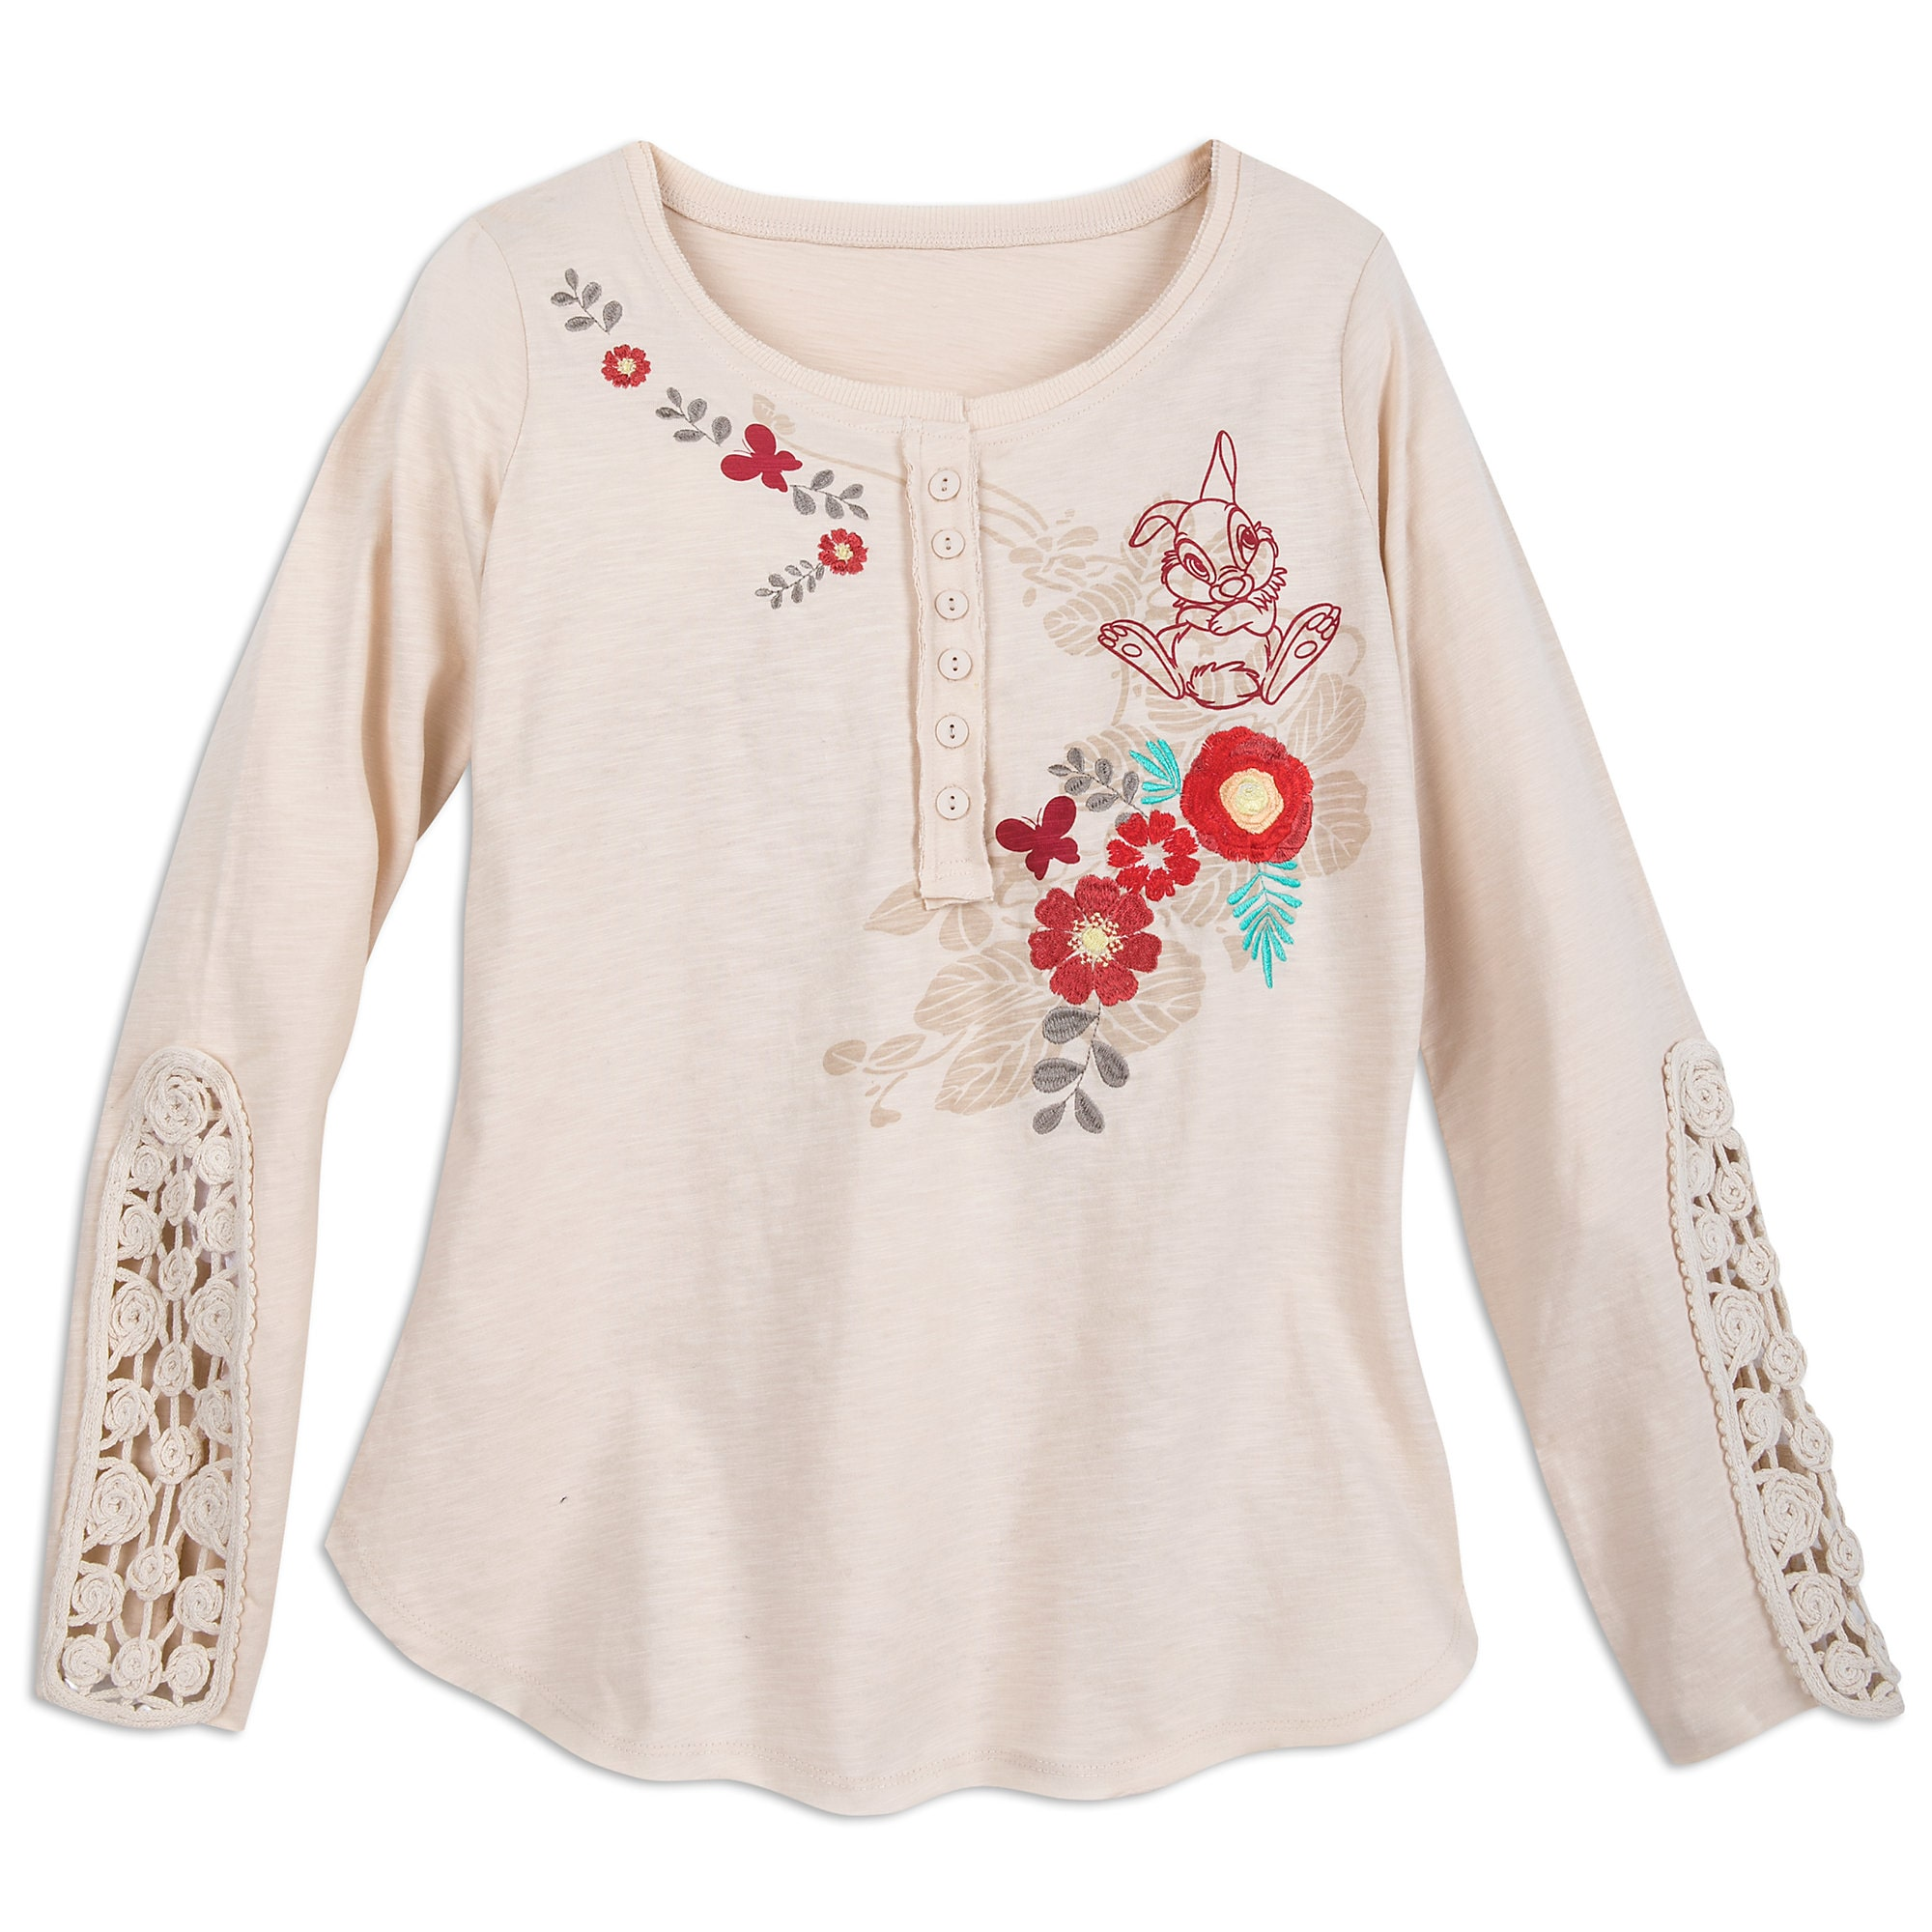 Thumper and Flower Fashion Top for Women by Disney Boutique